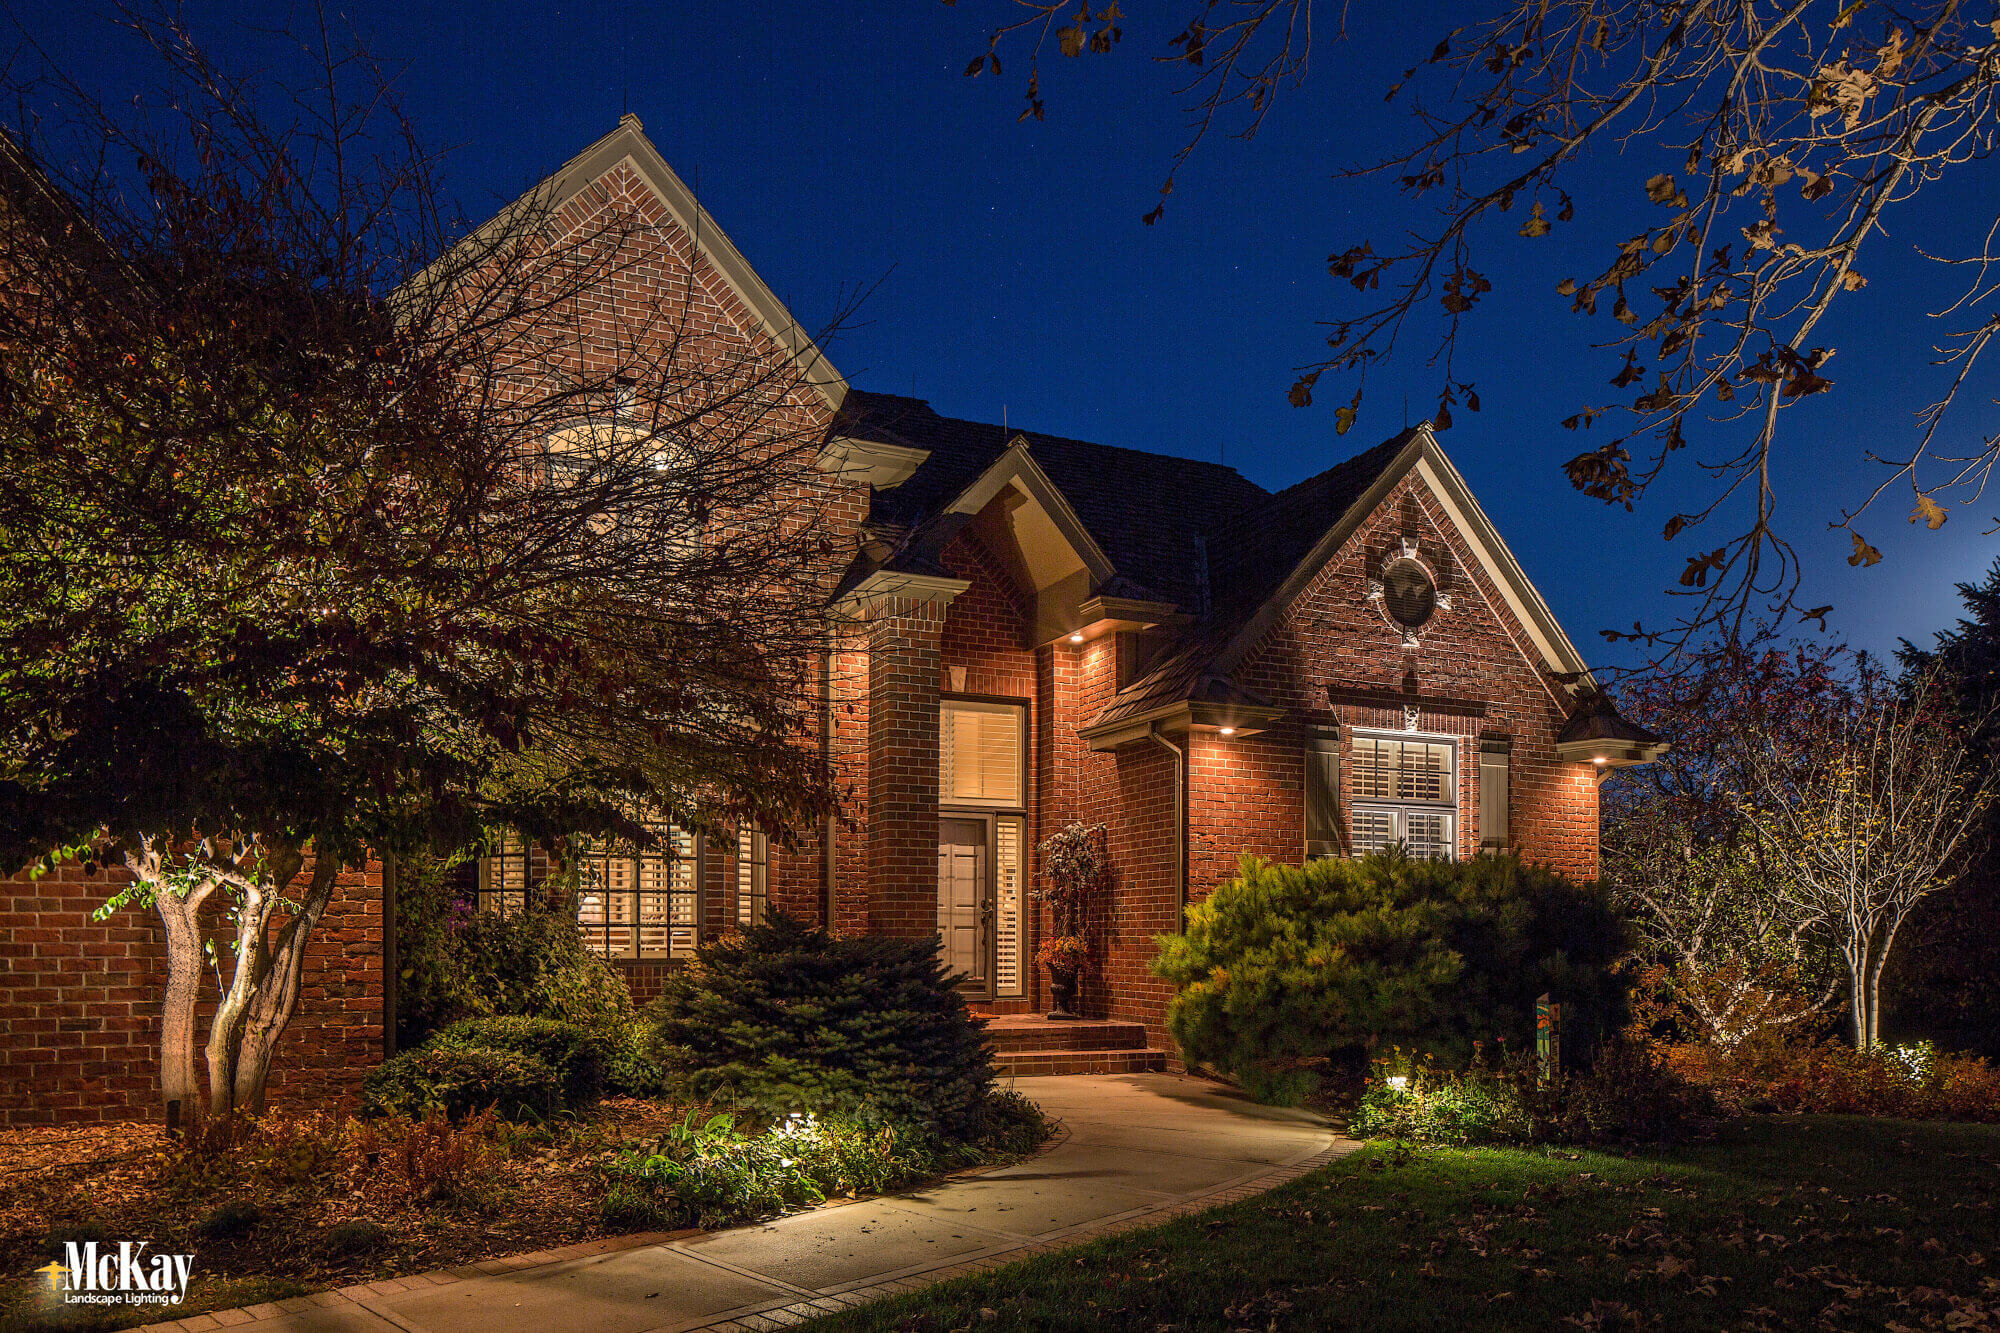 CAN I PUT LED BULBS IN MY HALOGEN LANDSCAPE LIGHTING FIXTURES? Click to see what we recommend. | Landscape Lighting LED Upgrade Omaha Nebraska McKay Landscape Lighting T 05